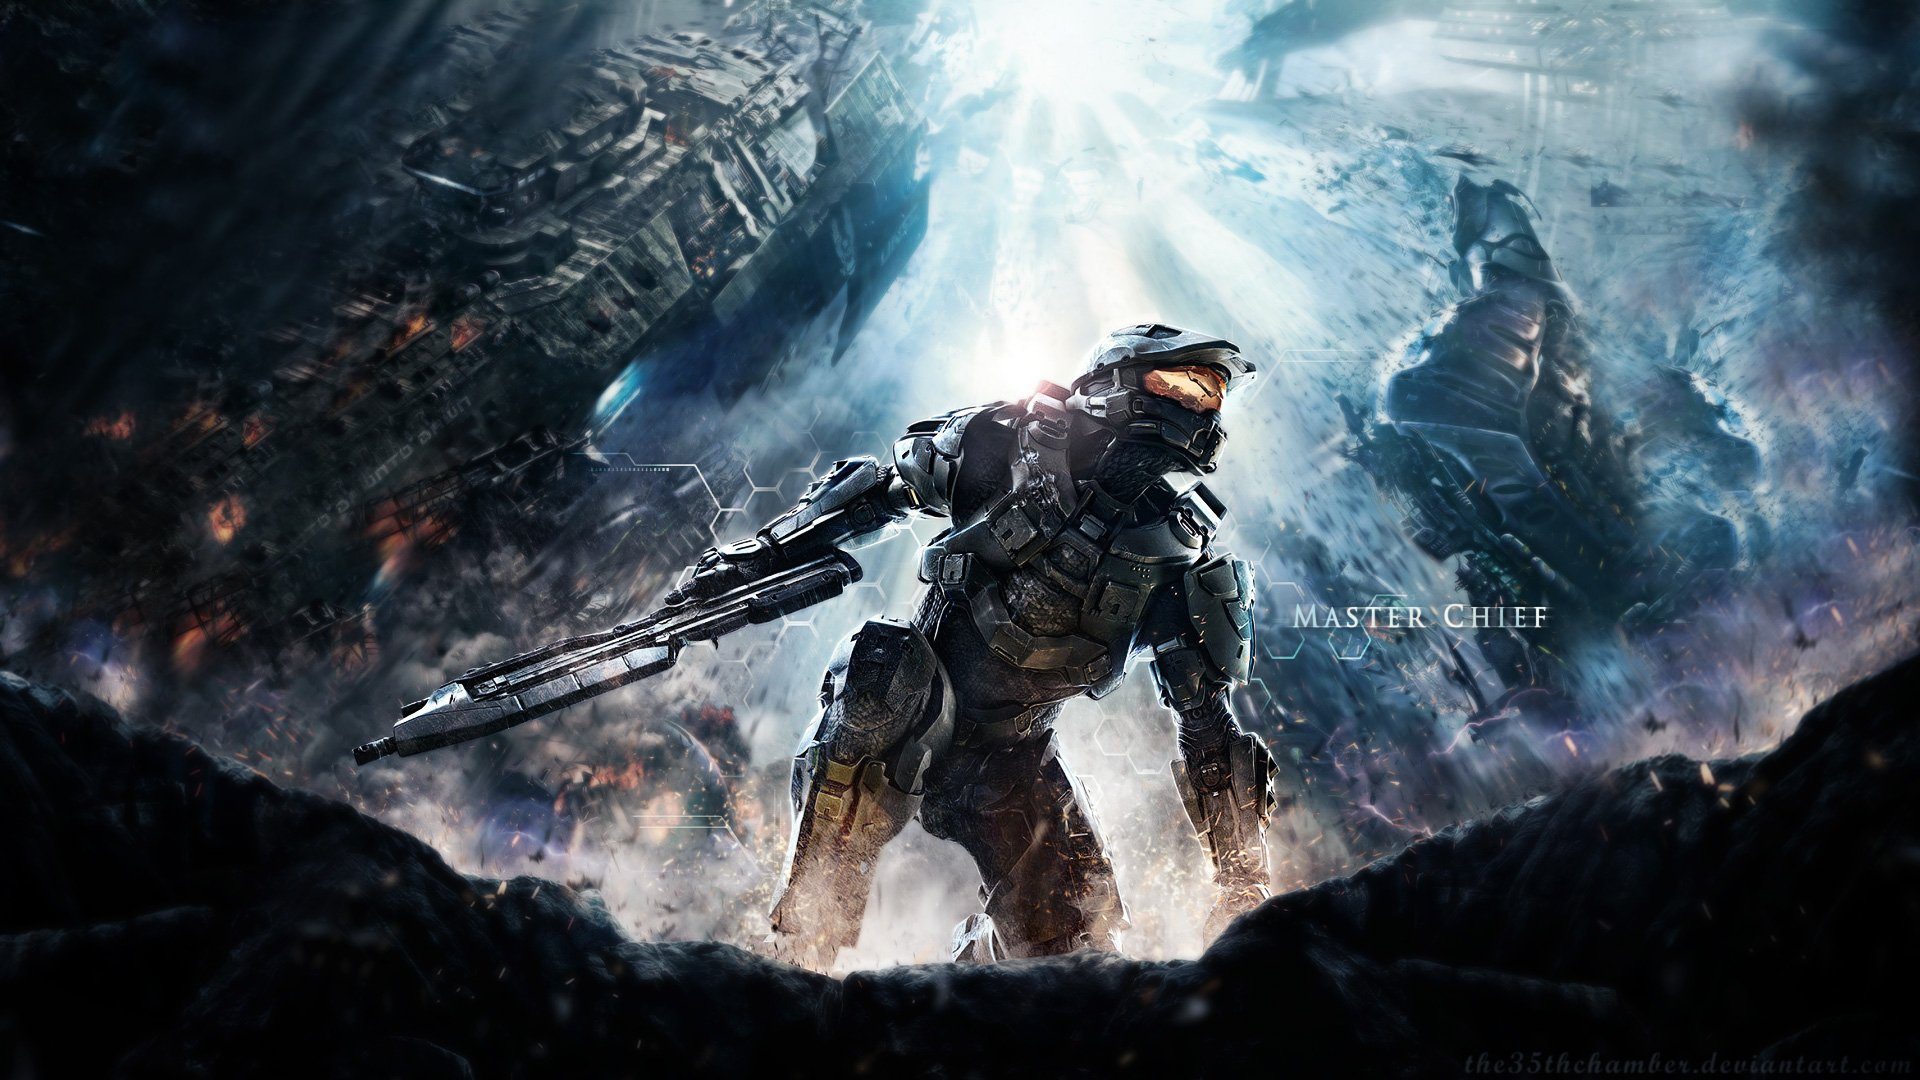 Halo 4 wallpaper4 1080p jpg 272166 1920x1080